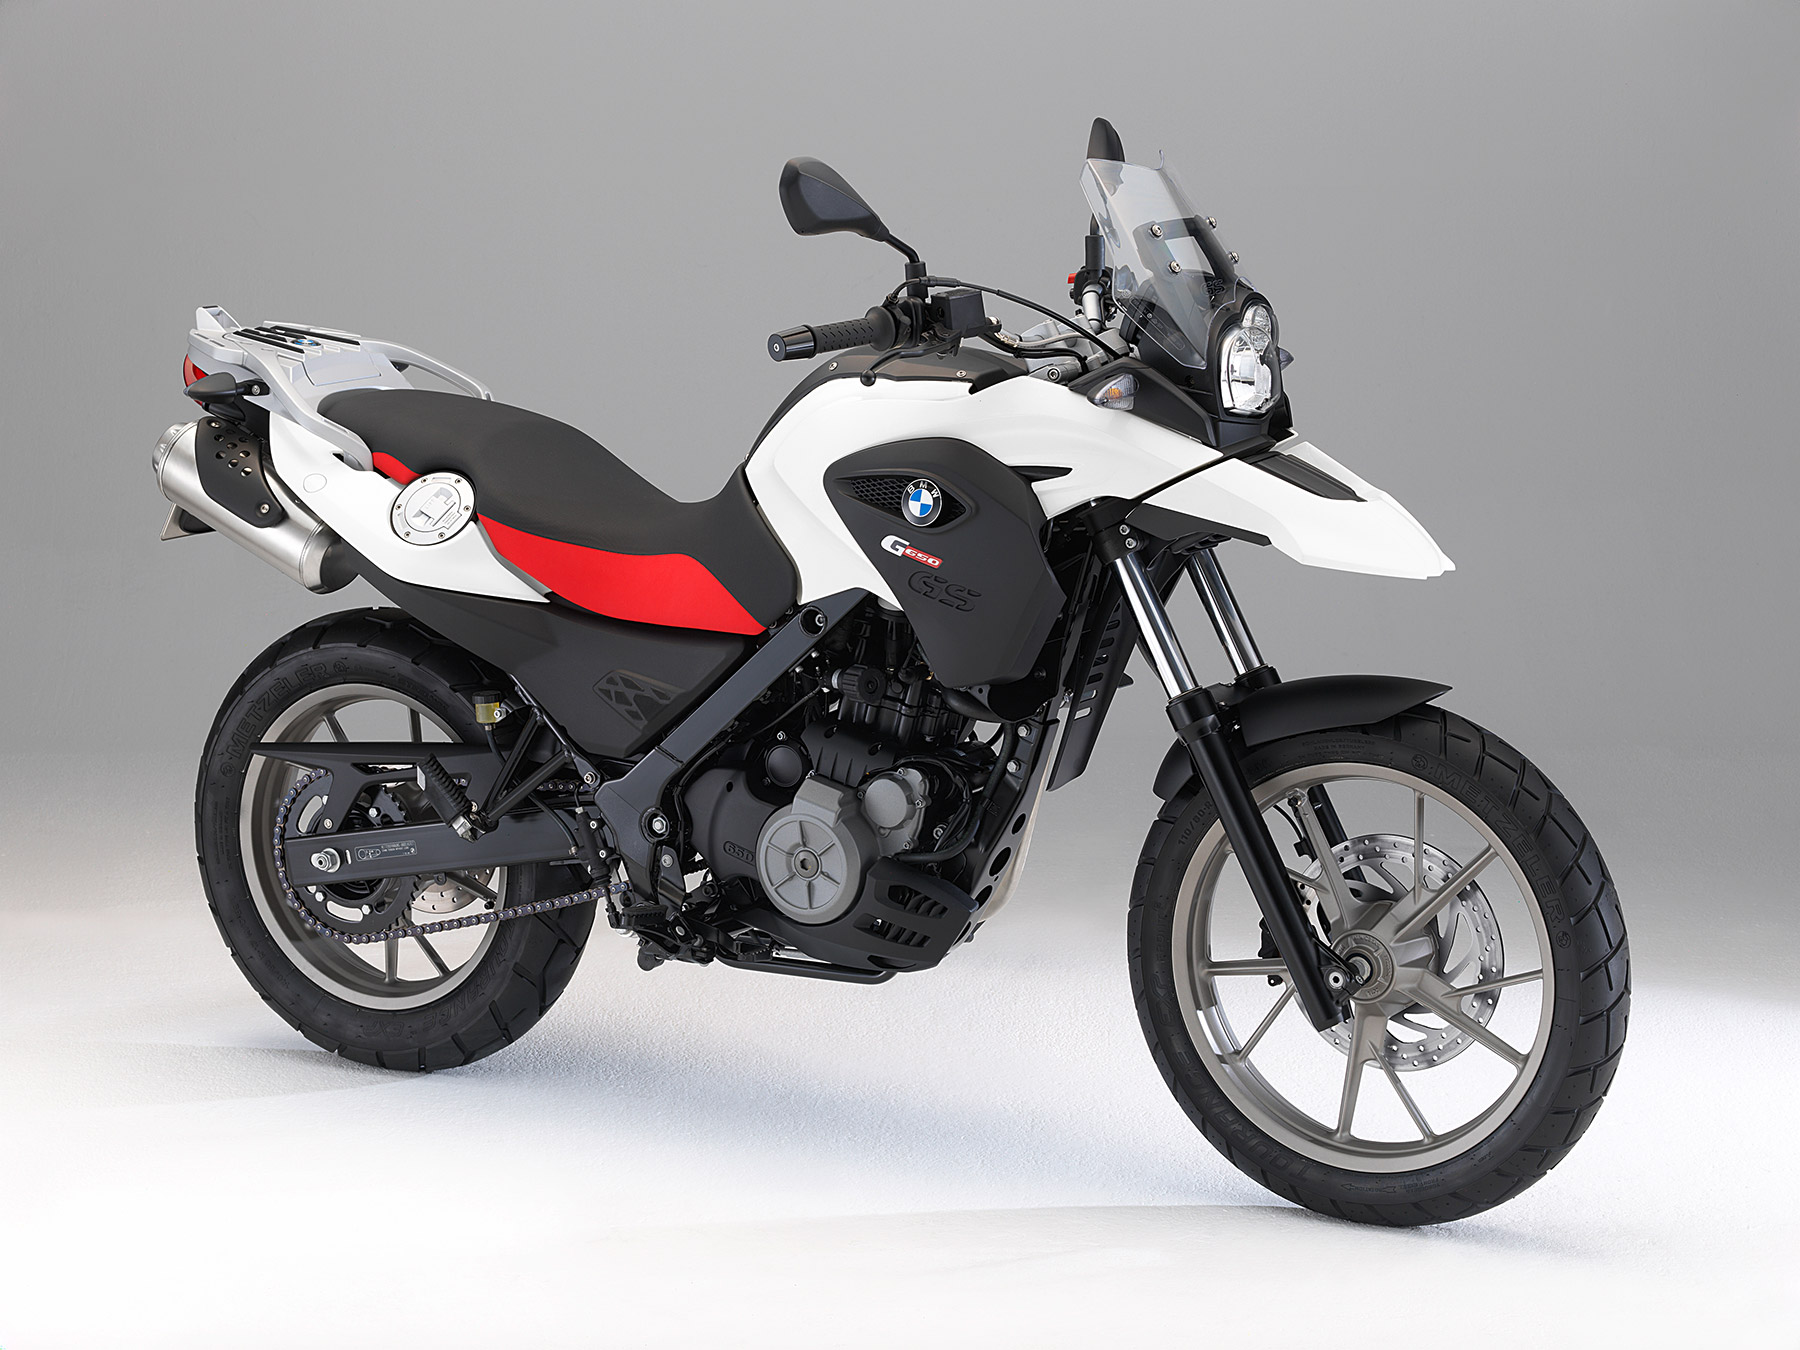 BMW G 650 GS 2015 images #78282